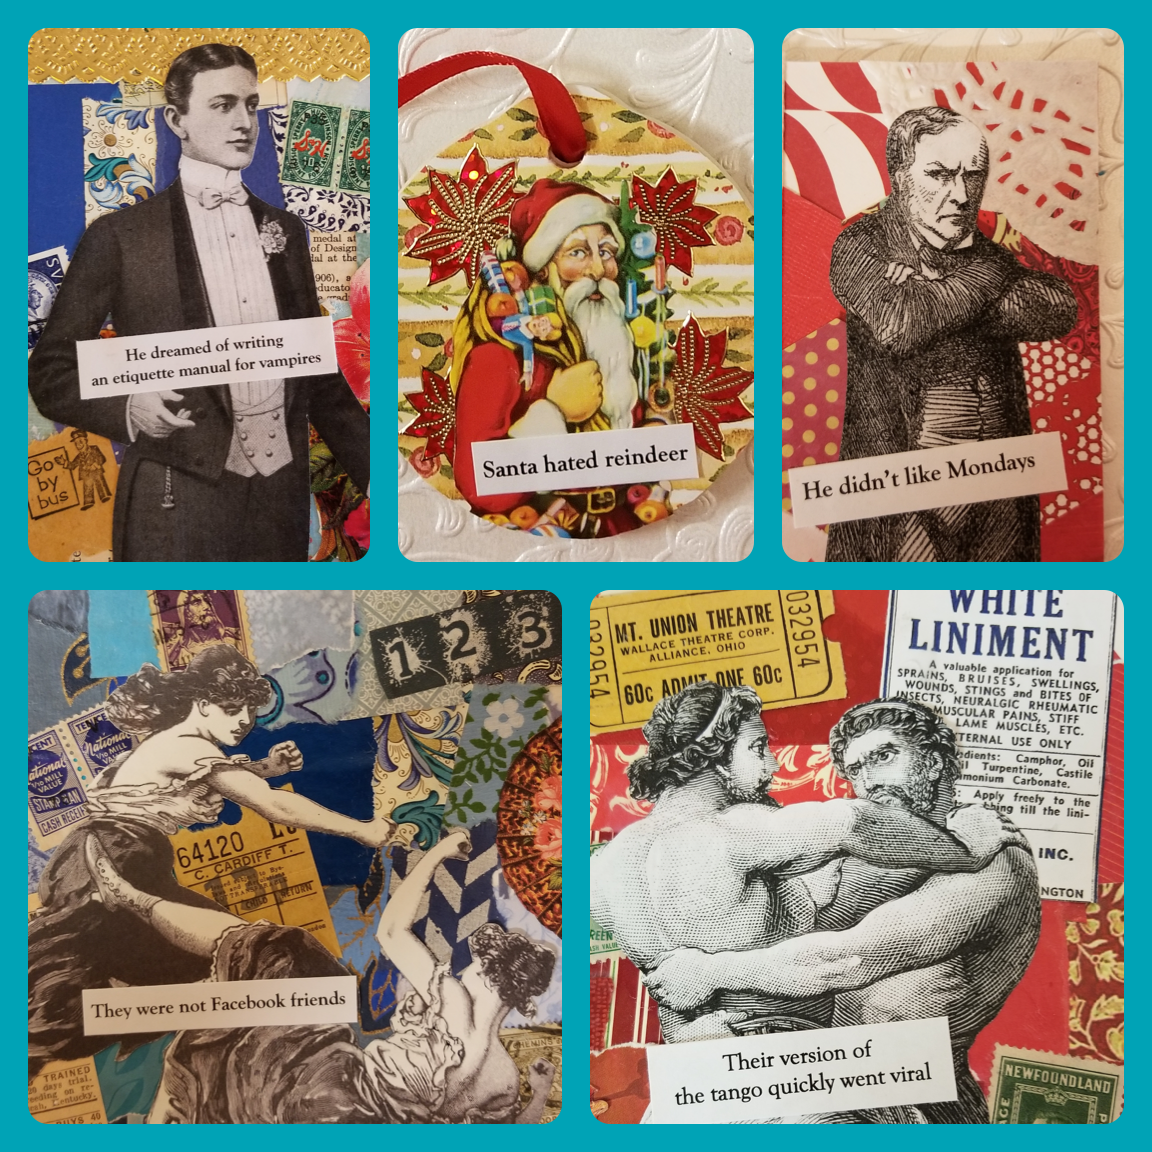 Lin Collette - Lin Collette is a prolific satirical collage artist and member of the Pawtucket Arts Collaborative. Lin will be showing her amazing, silly, and weird outsider art on magnets and canvases for your shopping pleasure.